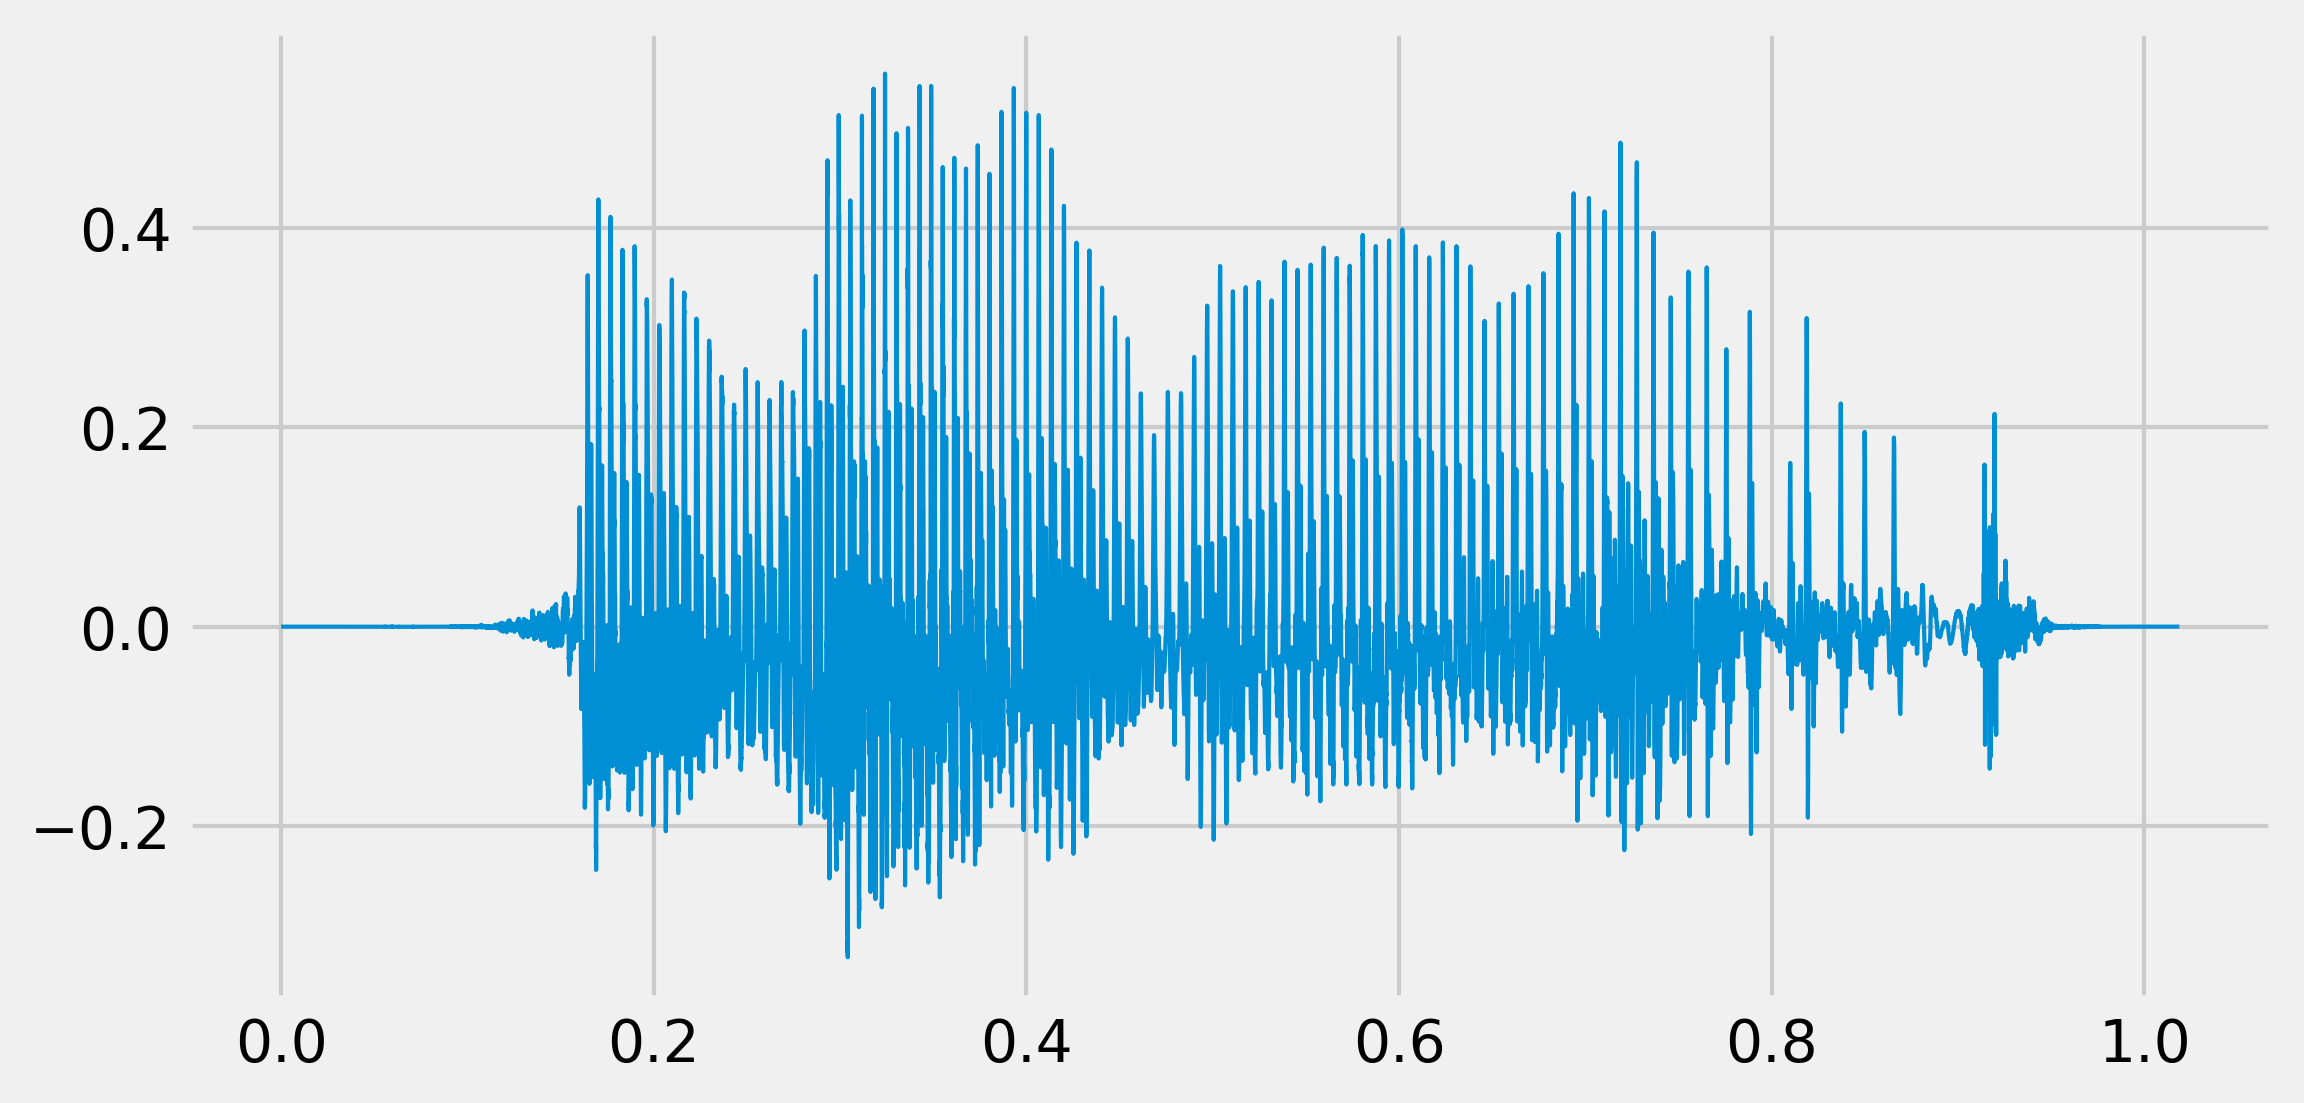 IPython Cookbook - 11 6  Applying digital filters to speech sounds